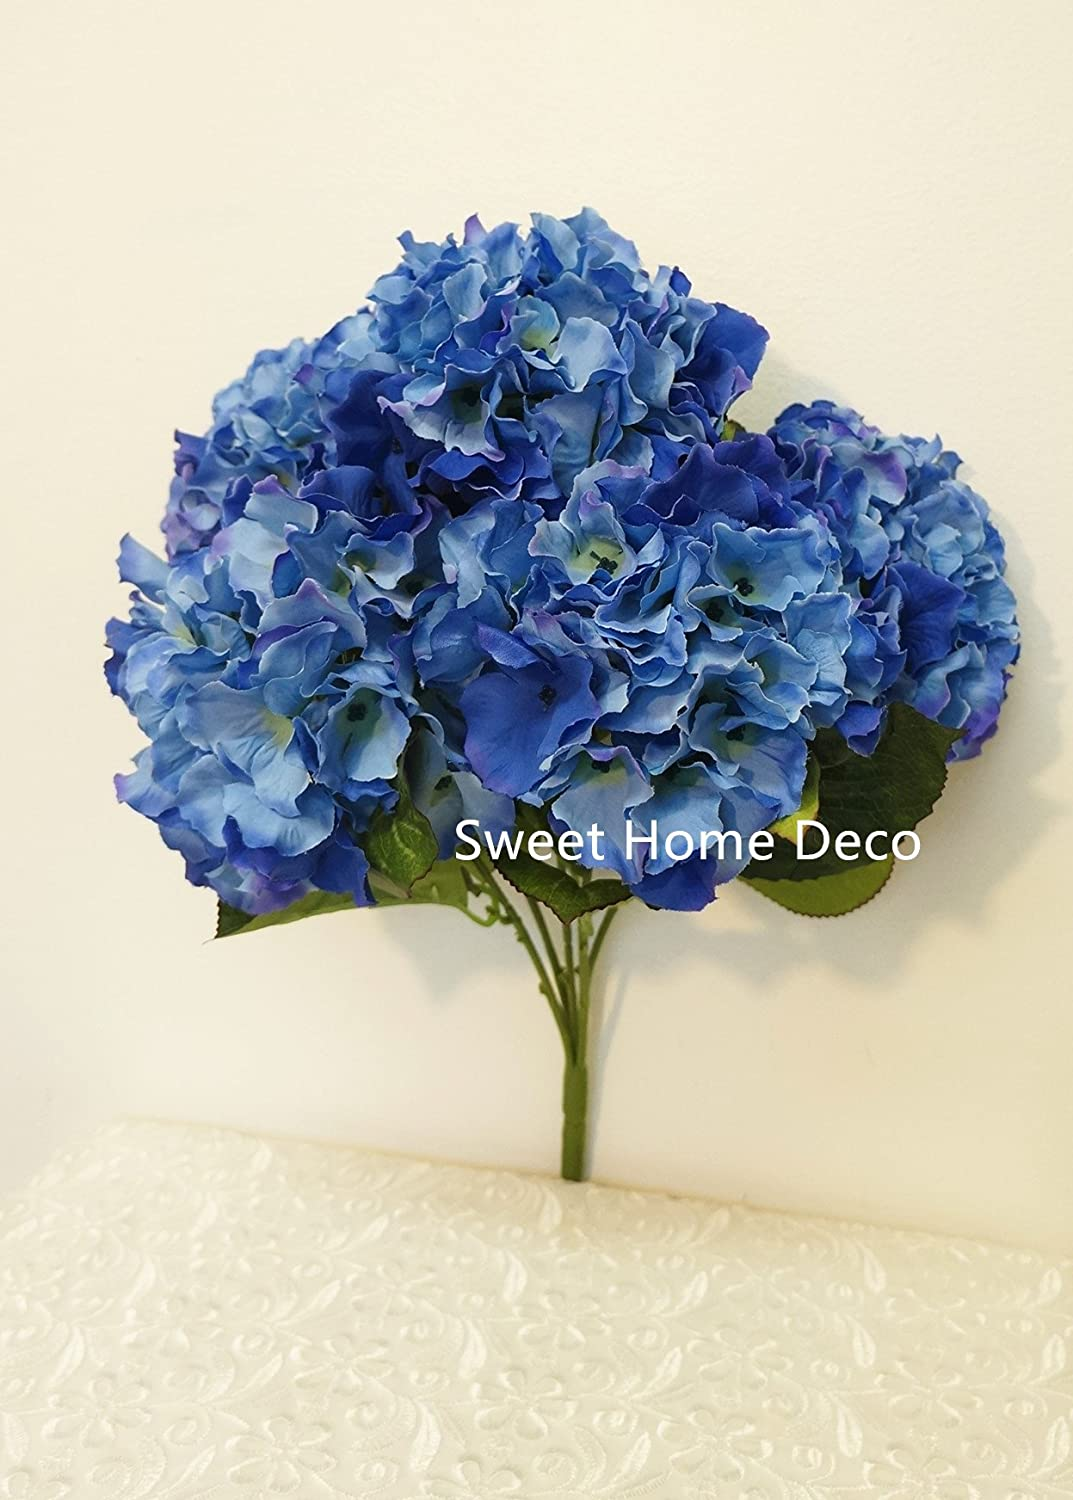 Amazon sweet home deco 18 super soft silk hydrangea amazon sweet home deco 18 super soft silk hydrangea artificial flower bouquet 5 stem 5mop heads with no potcenterpieces wedding decoration dhlflorist Image collections